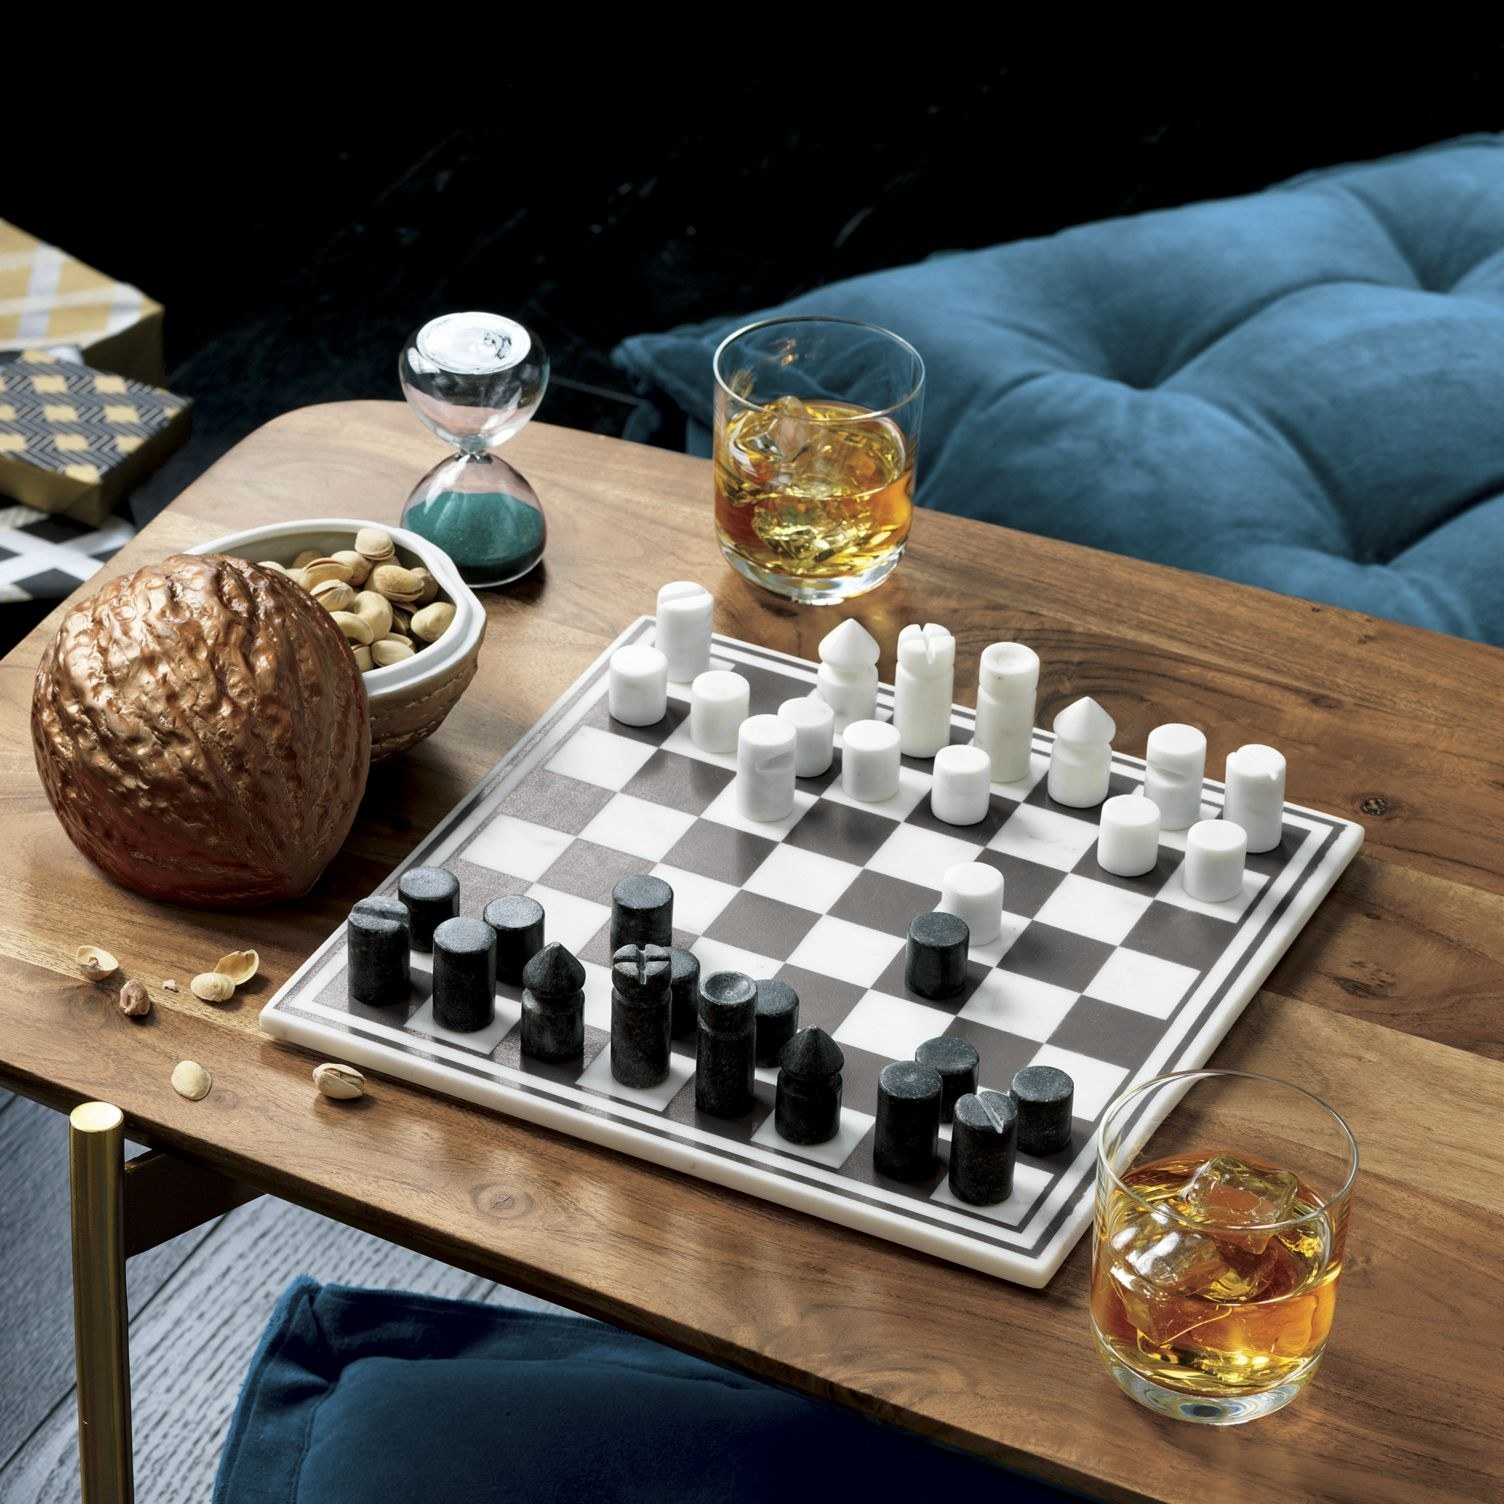 The small square black and white checkered board with black and white marble pieces